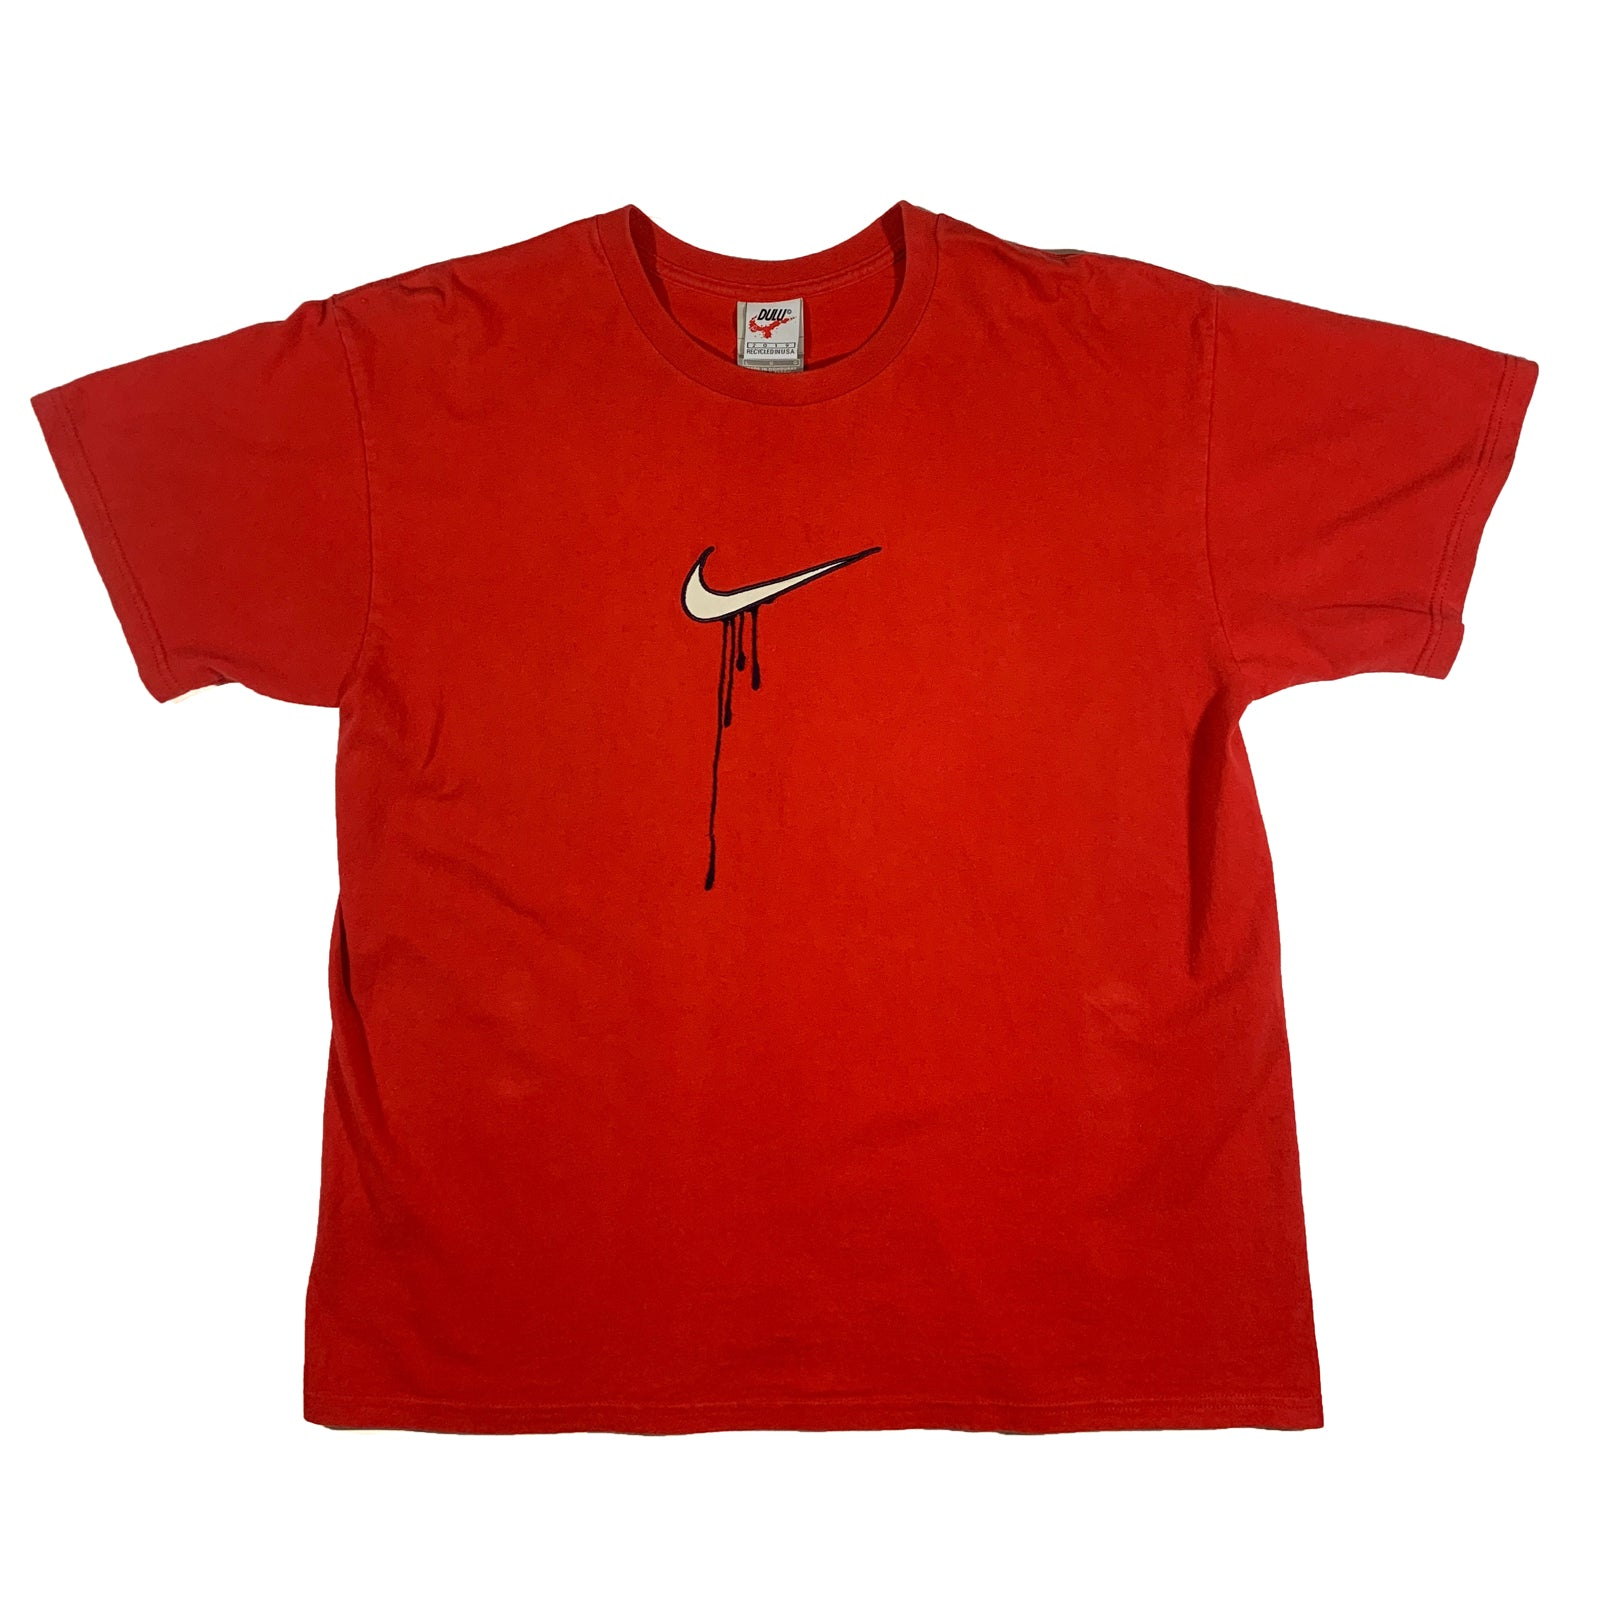 "BANDULU "" SIMPLE SIMON "" VINTAGE NIKE TEE L"